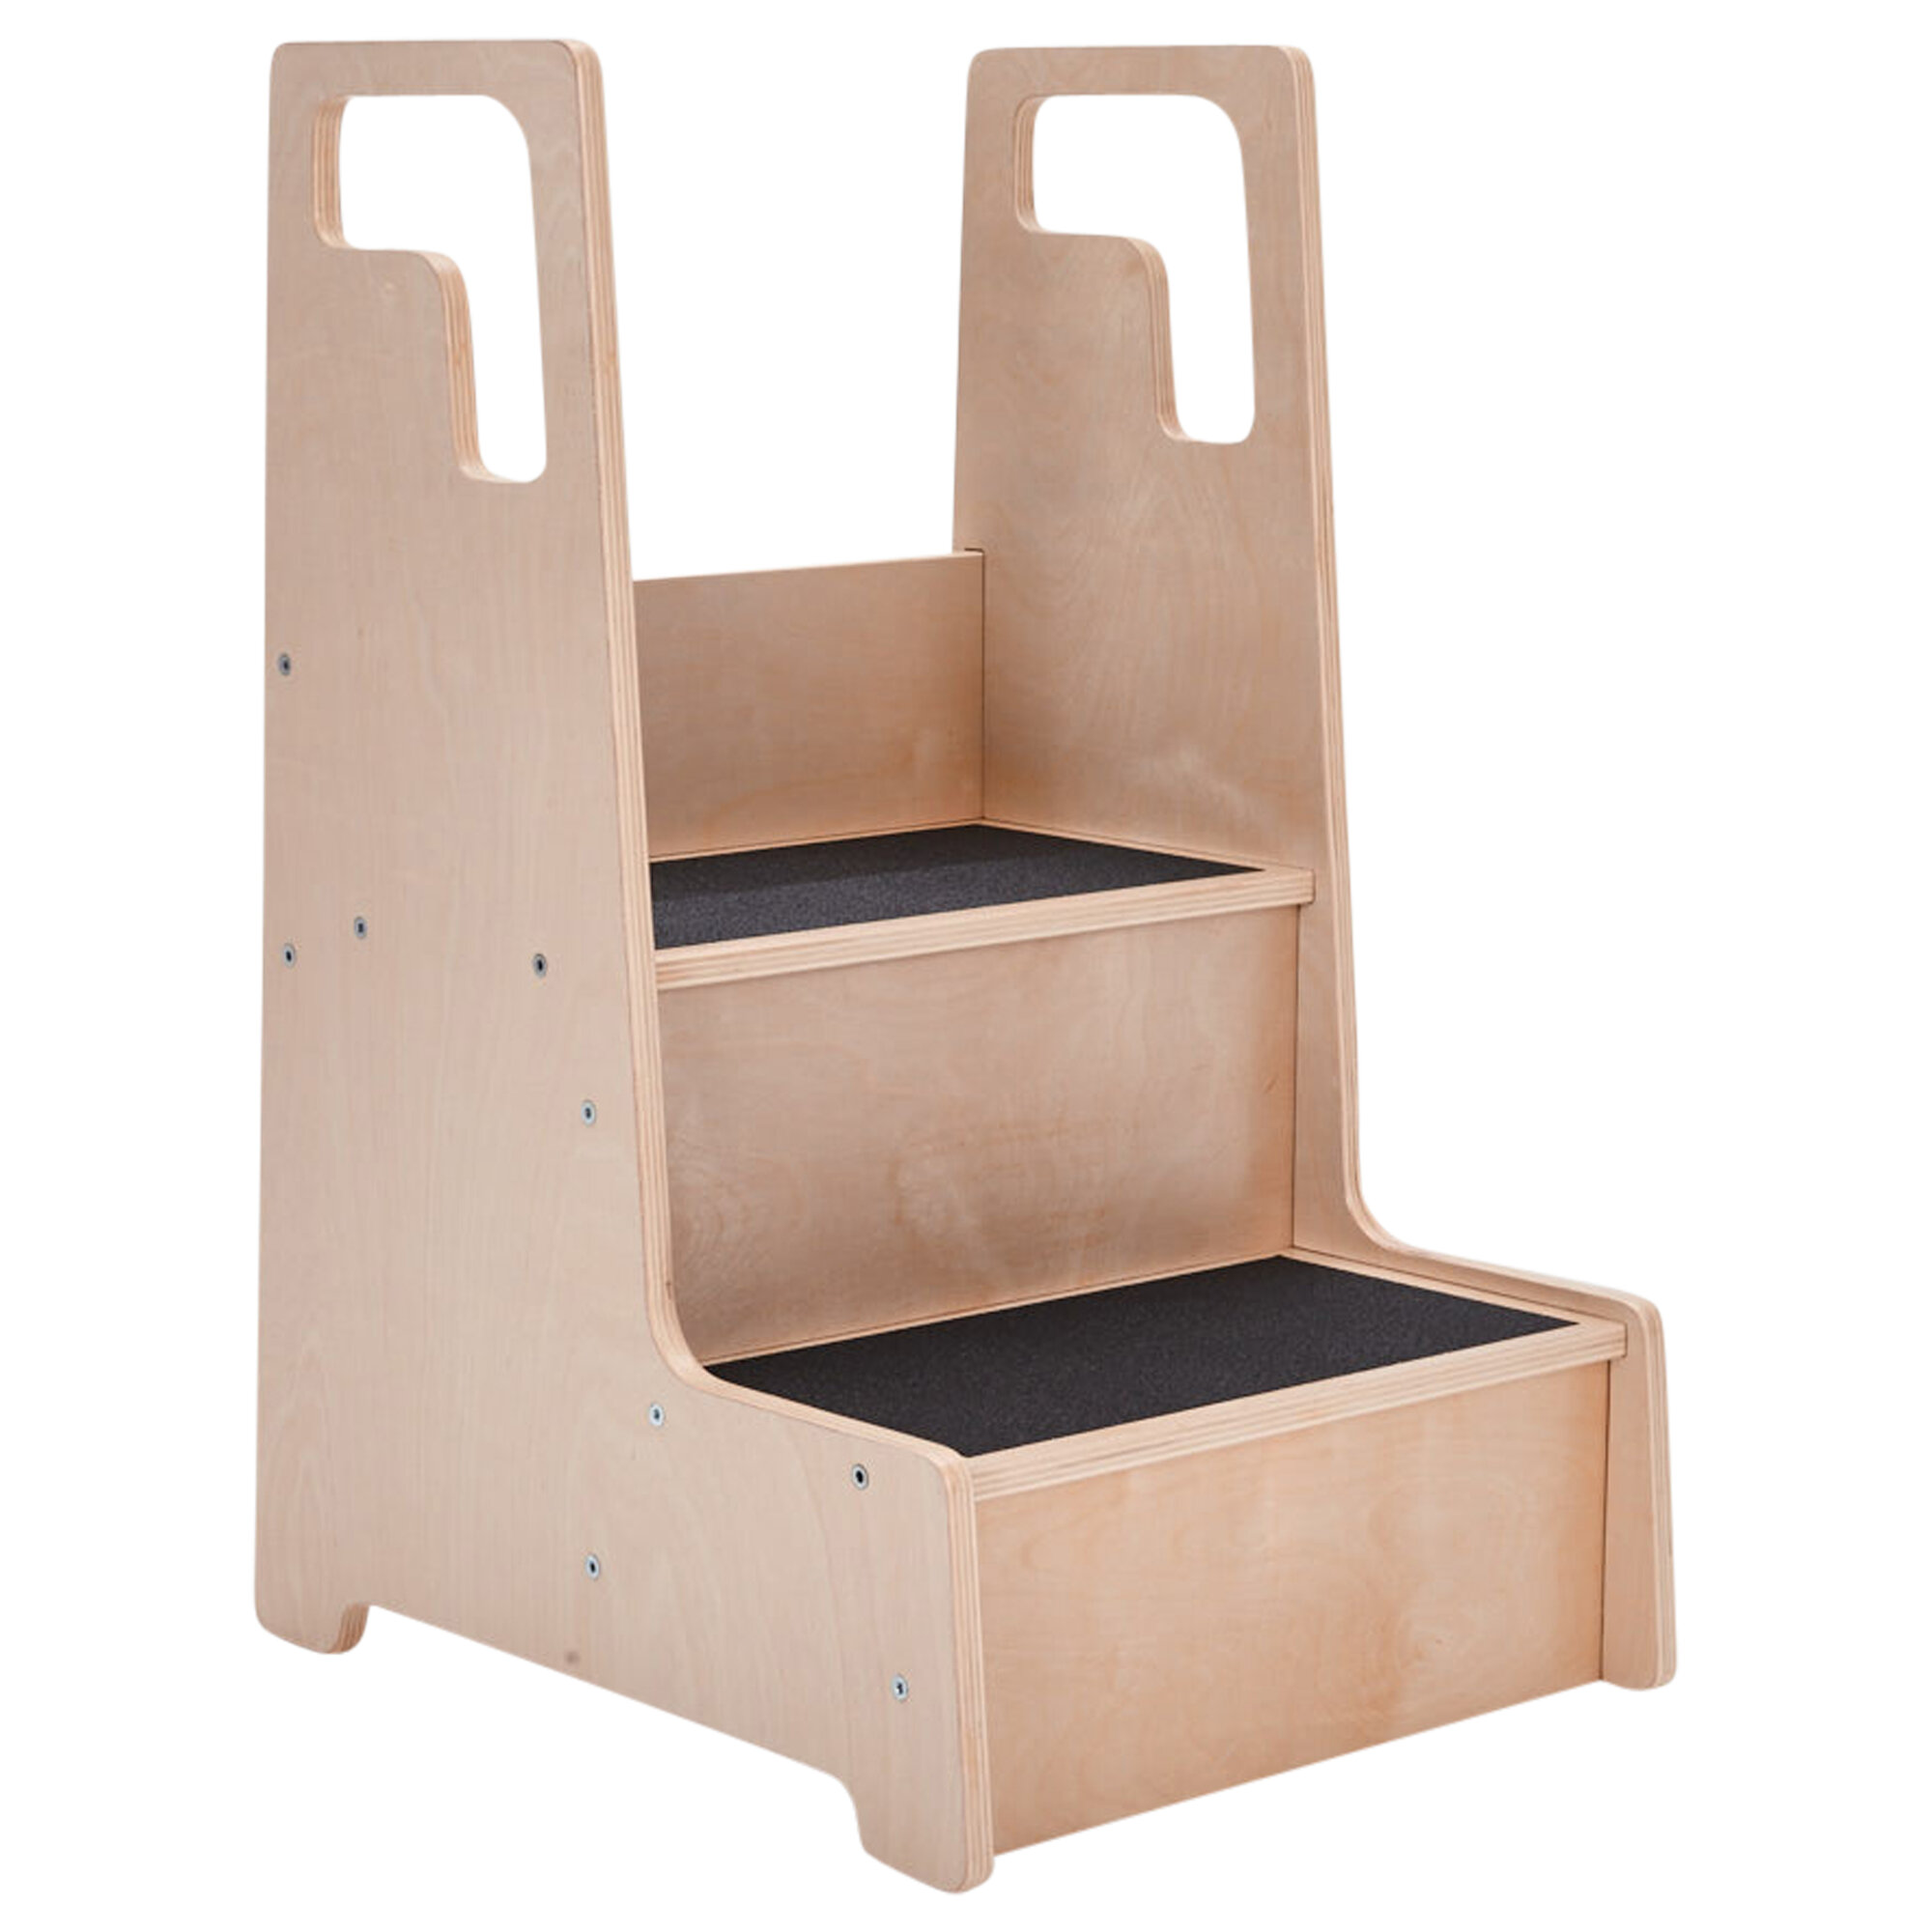 Superb Details About Ecr4Kids Reach Up Step Stool Pdpeps Interior Chair Design Pdpepsorg